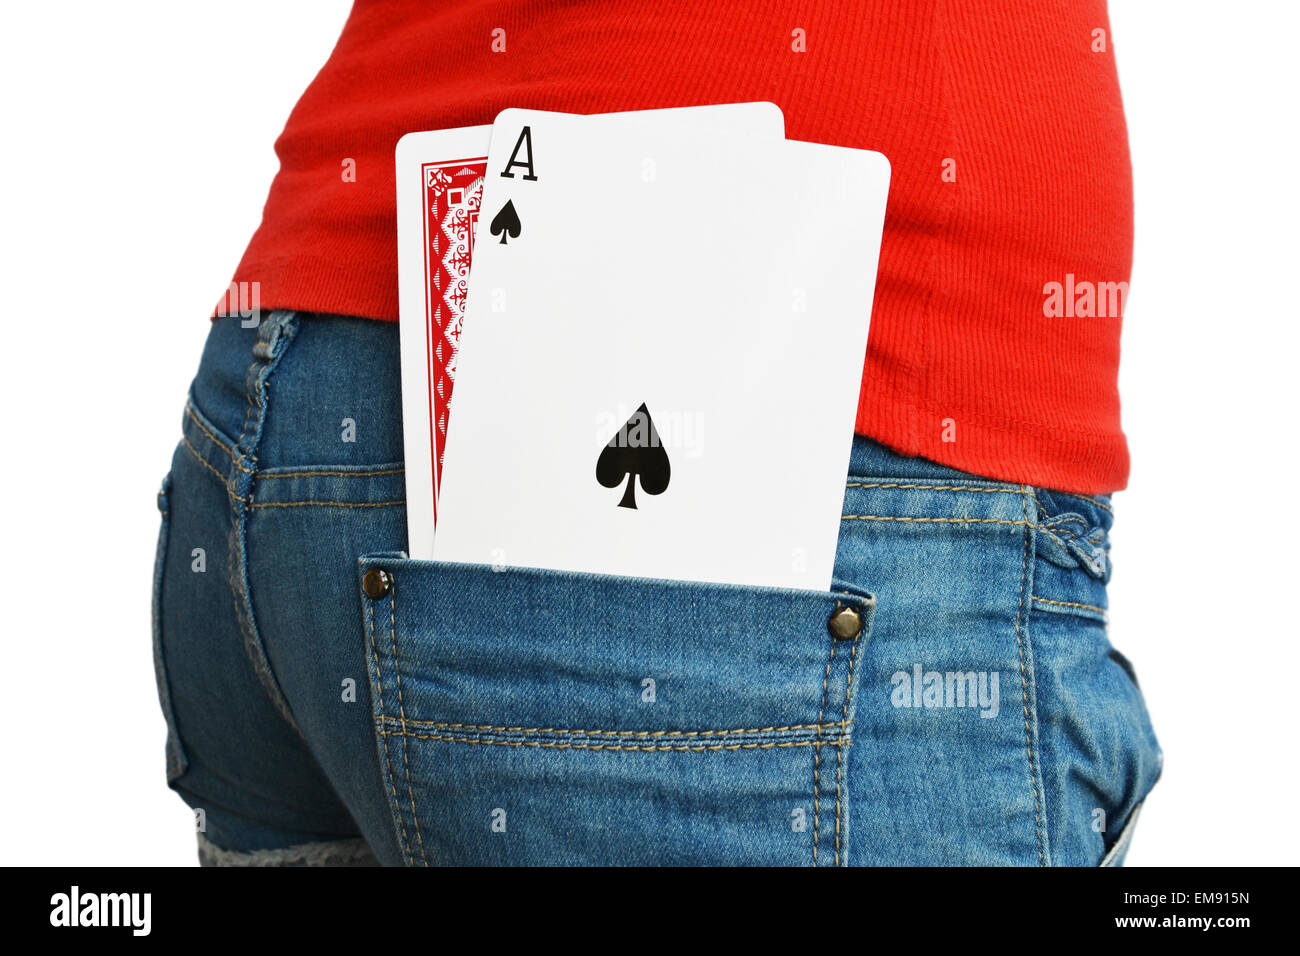 An ace and a hidden playing cards in a rear pocket of a jeans - Stock Image